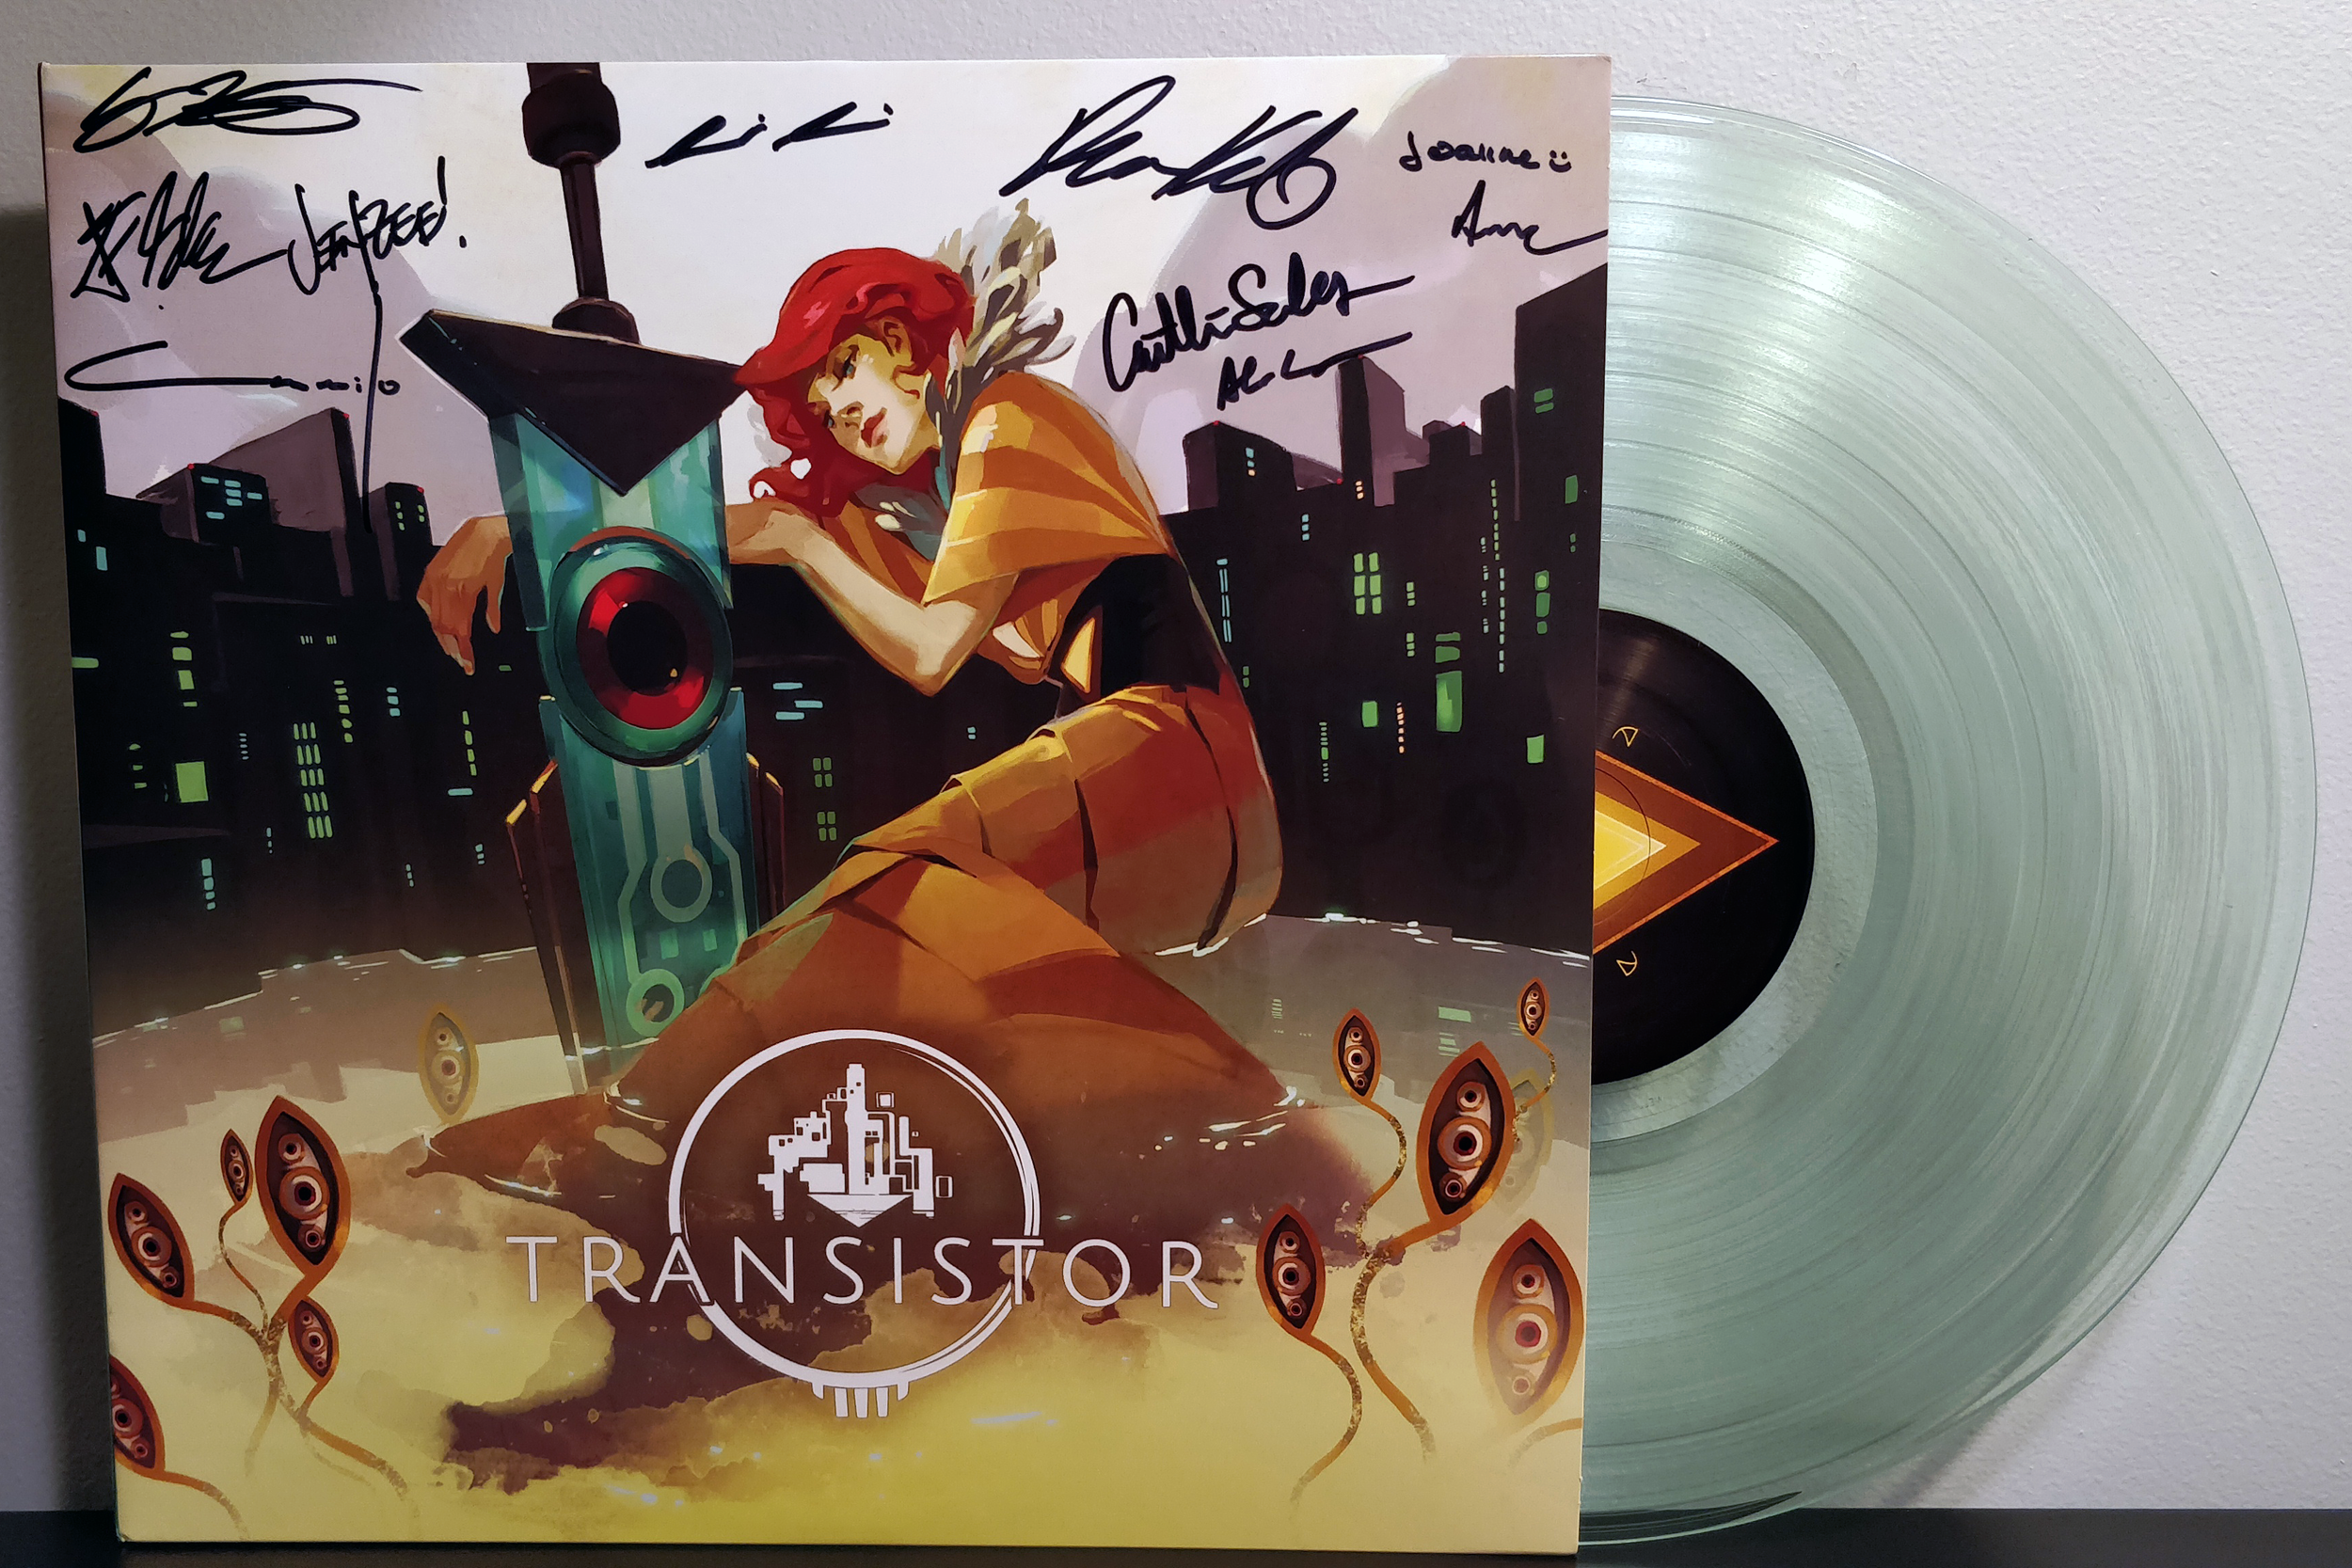 """Transistor by Darren Korb pressed on """"Coke-Bottle Clear"""" by Supergiant Games & Gotta Groove Records"""